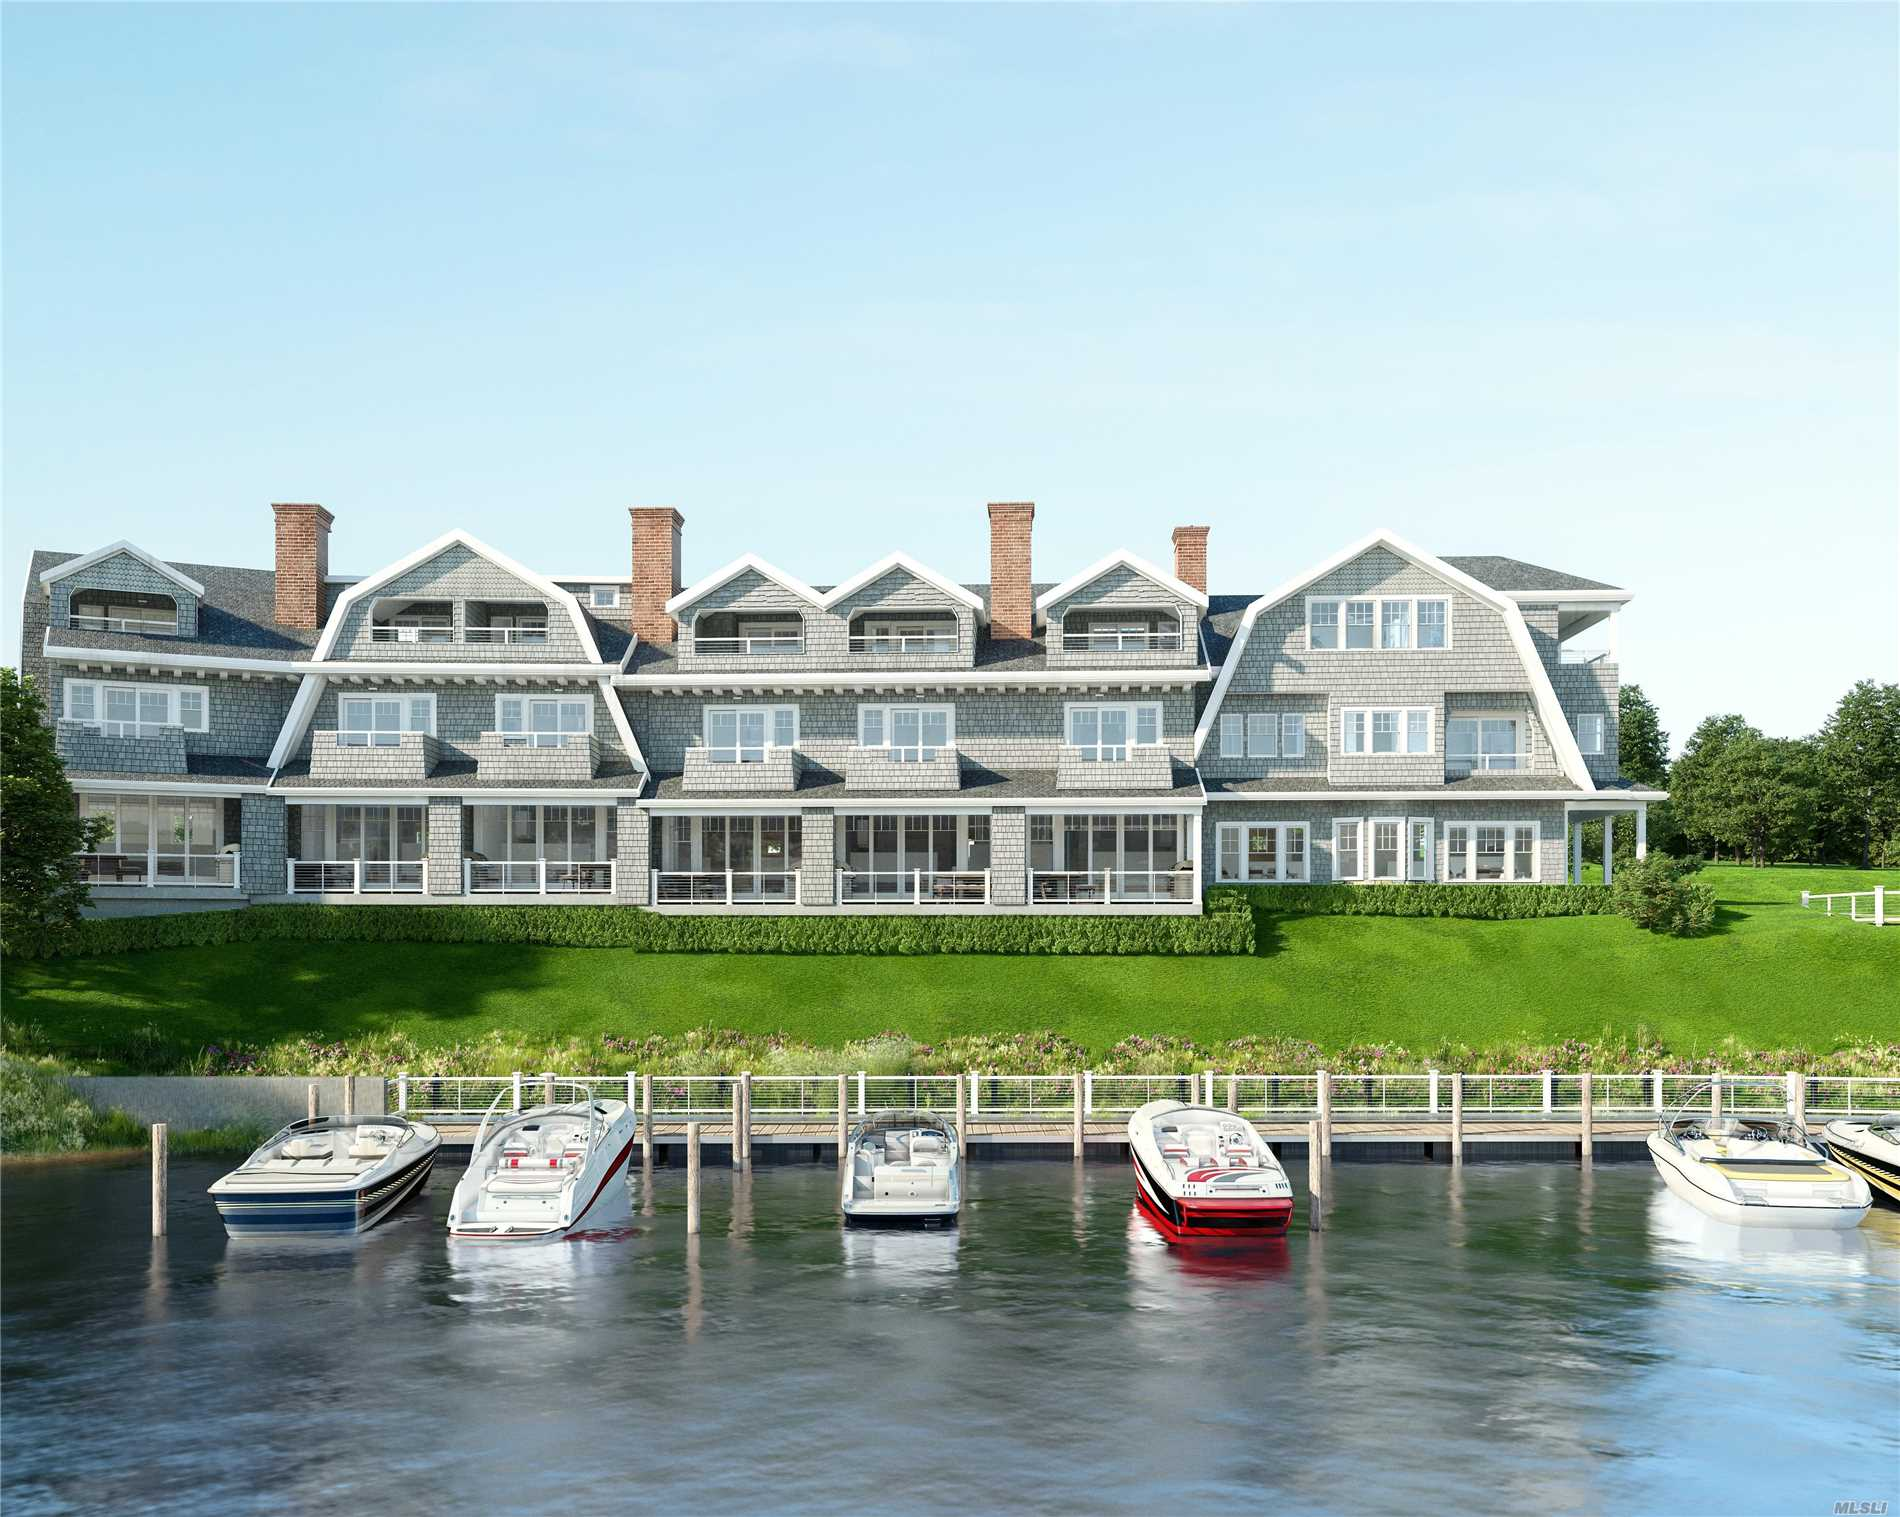 Property for sale at 37 Old Boathouse Lane # 401, Hampton Bays NY 11946, Hampton Bays,  New York 11946